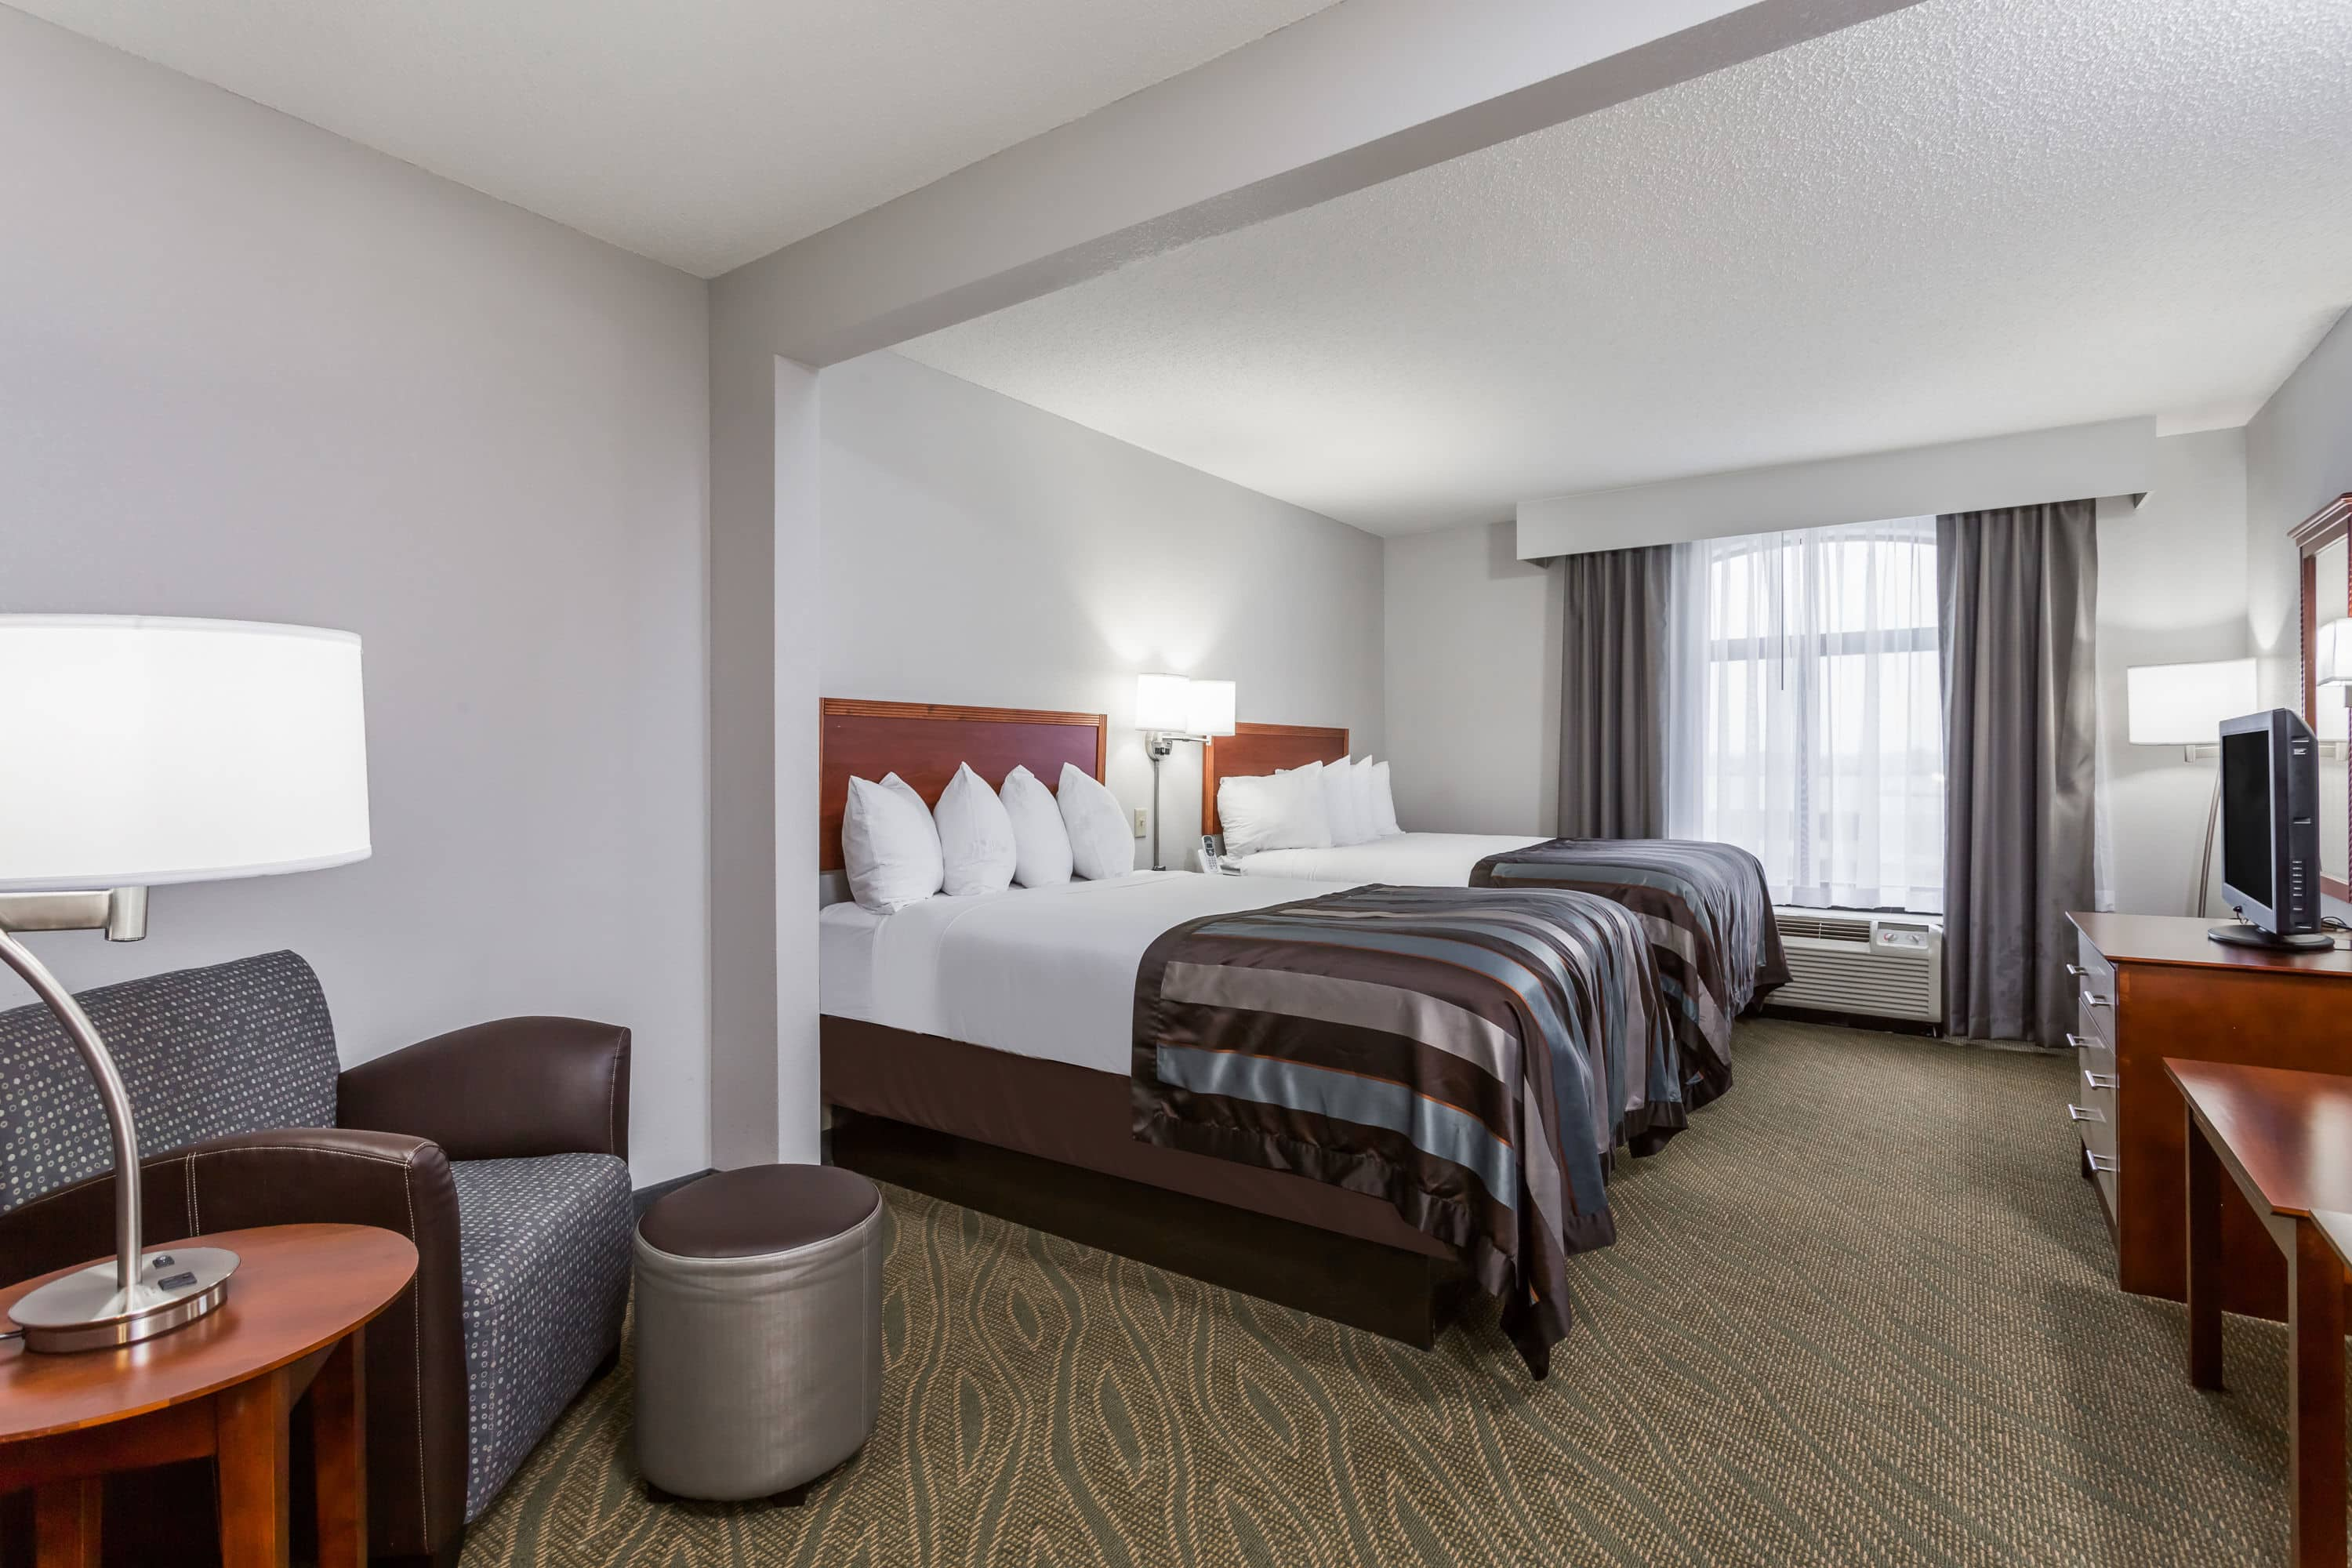 Guest Room At The Wingate By Wyndham Chesapeake In Chesapeake, Virginia